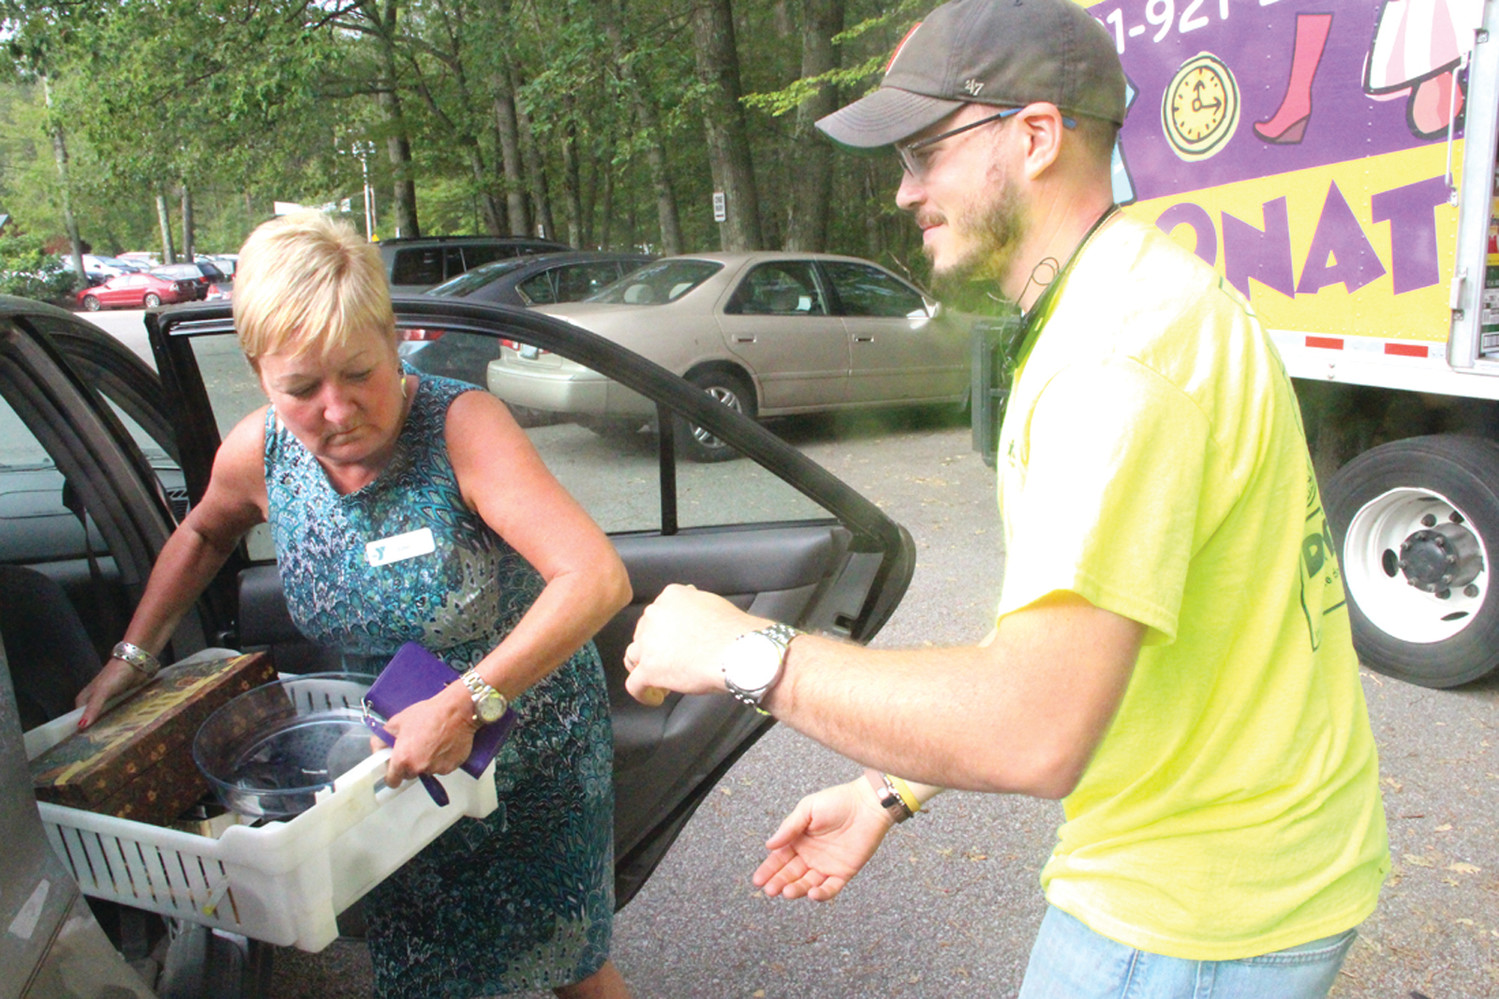 CURBSIDE SERVICE: Kent County YMCA director of operations Julie Casimiro and James Juskalian of Big Brothers Big Sisters unload donations dropped at the Y Wednesday morning.